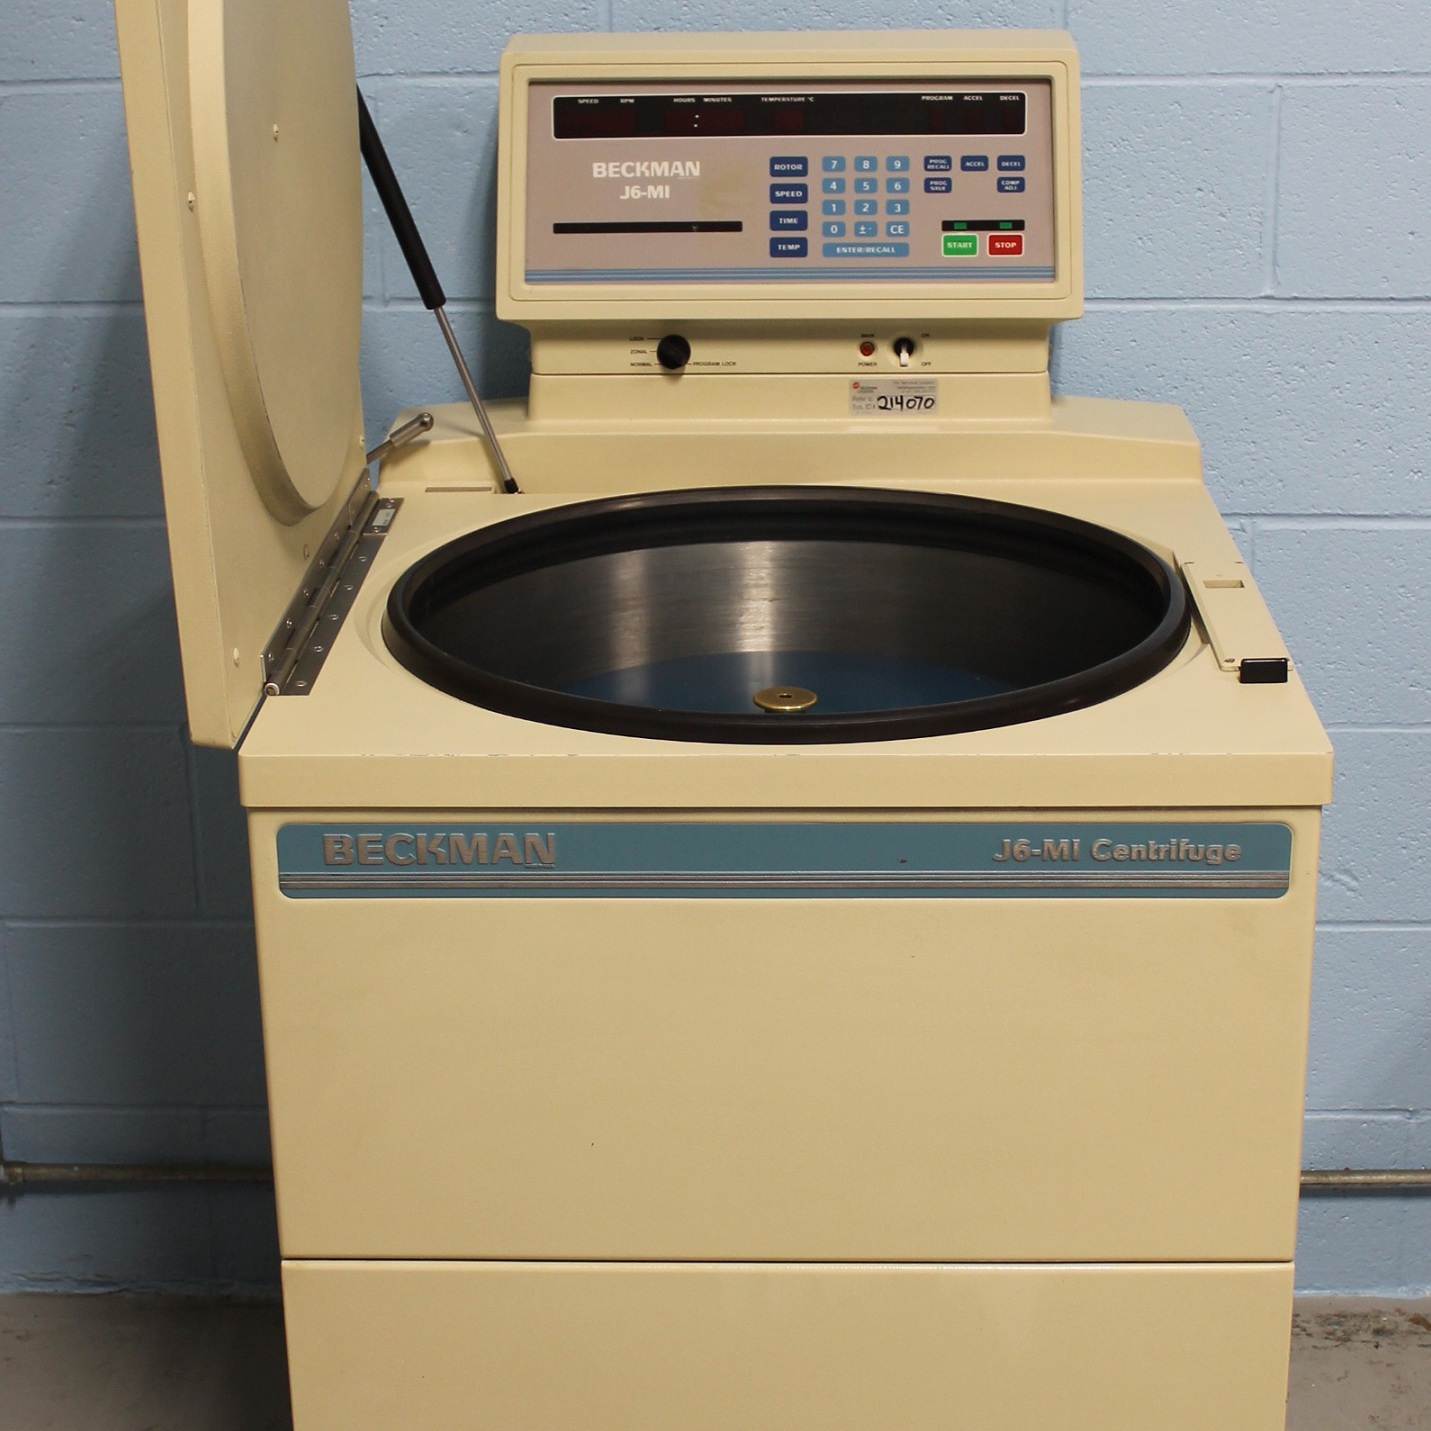 Beckman Coulter J6-MI Refrigerated High-Capacity Centrifuge Image